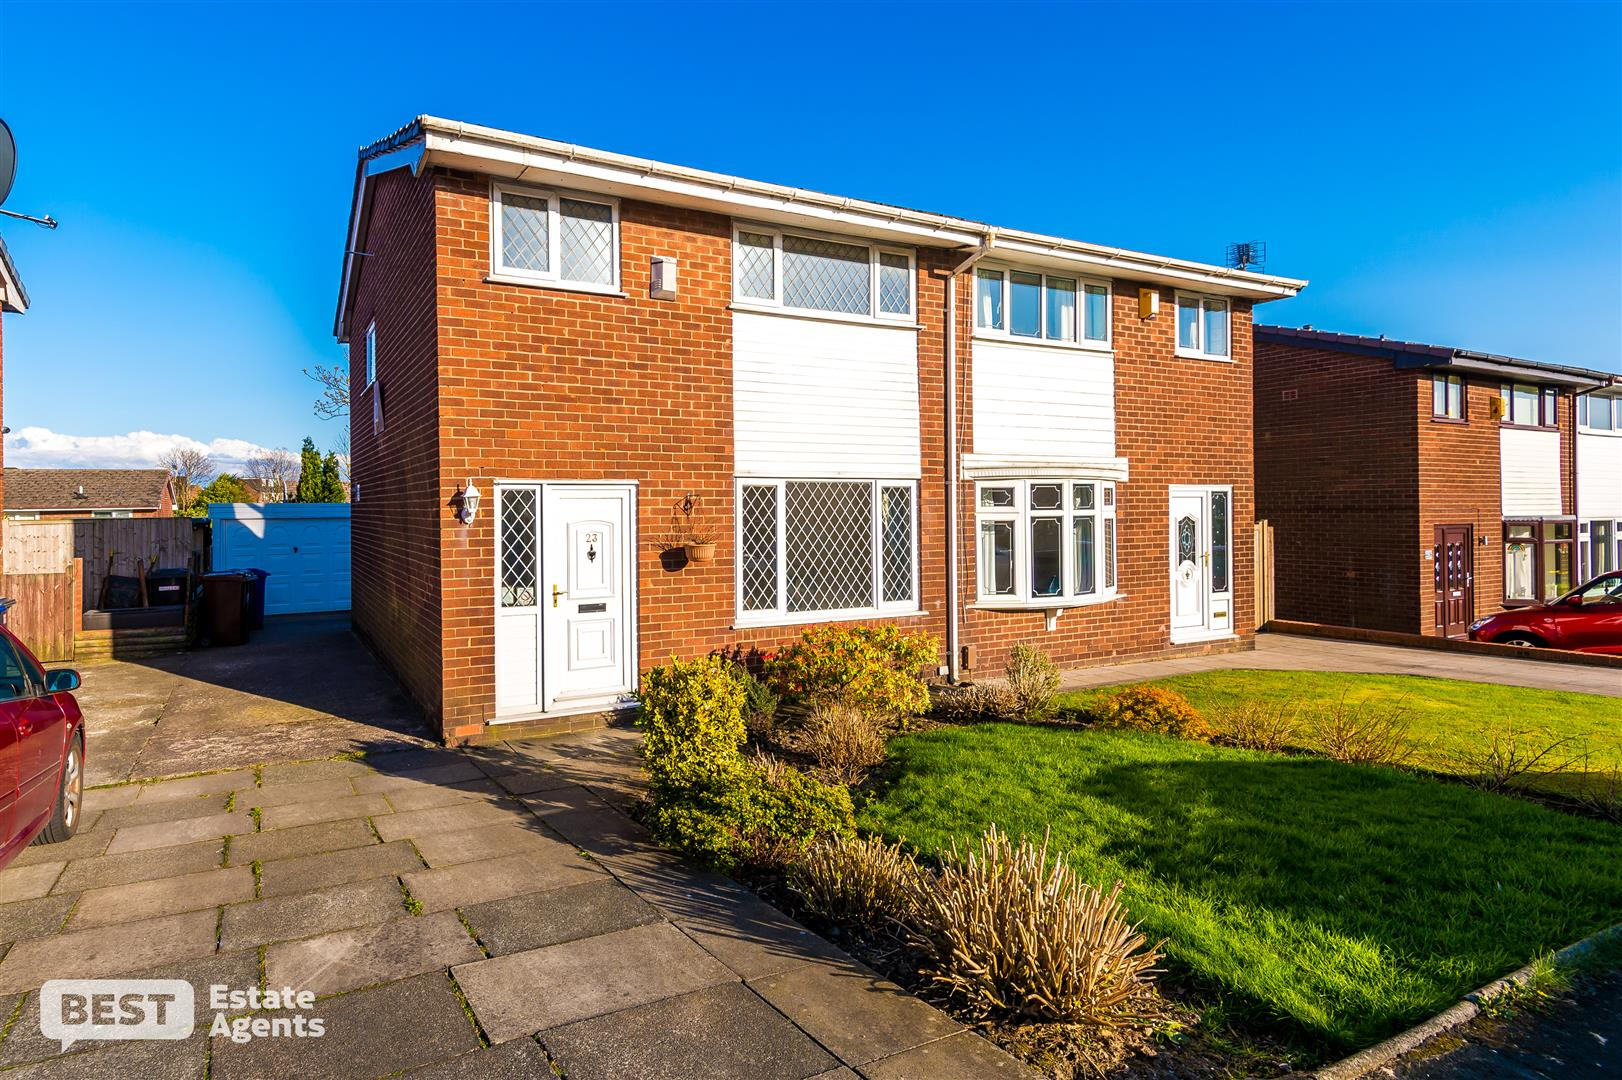 Meadowbank Avenue, Atherton, Greater Manchester, M46 9LB